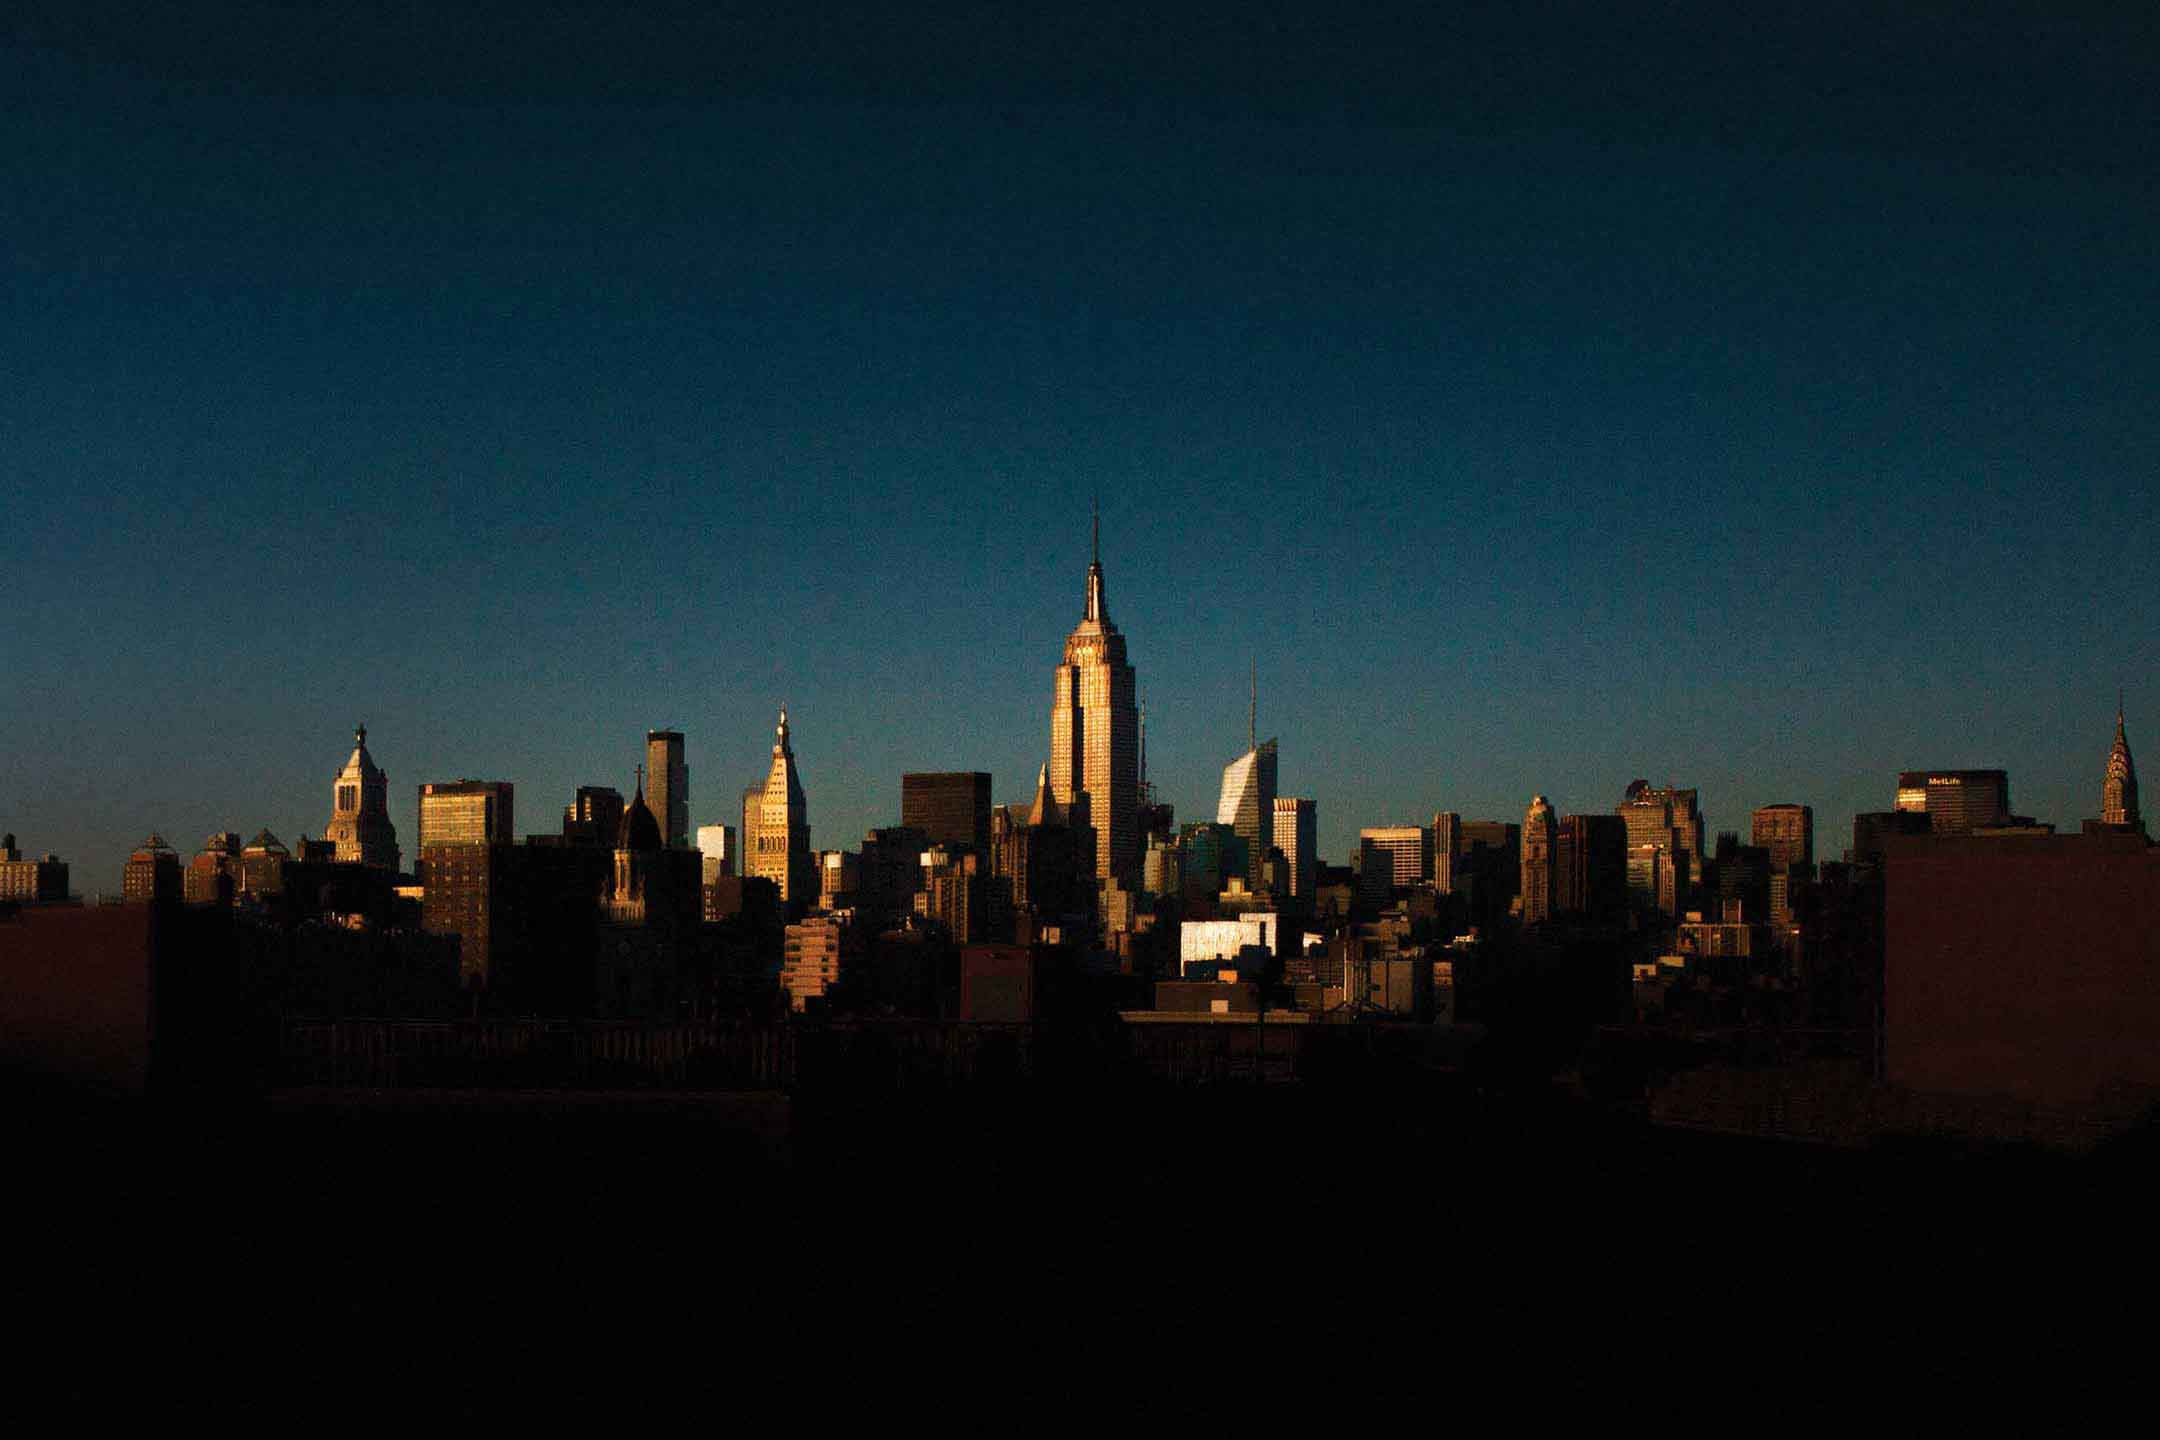 Dusk New York City Skyline